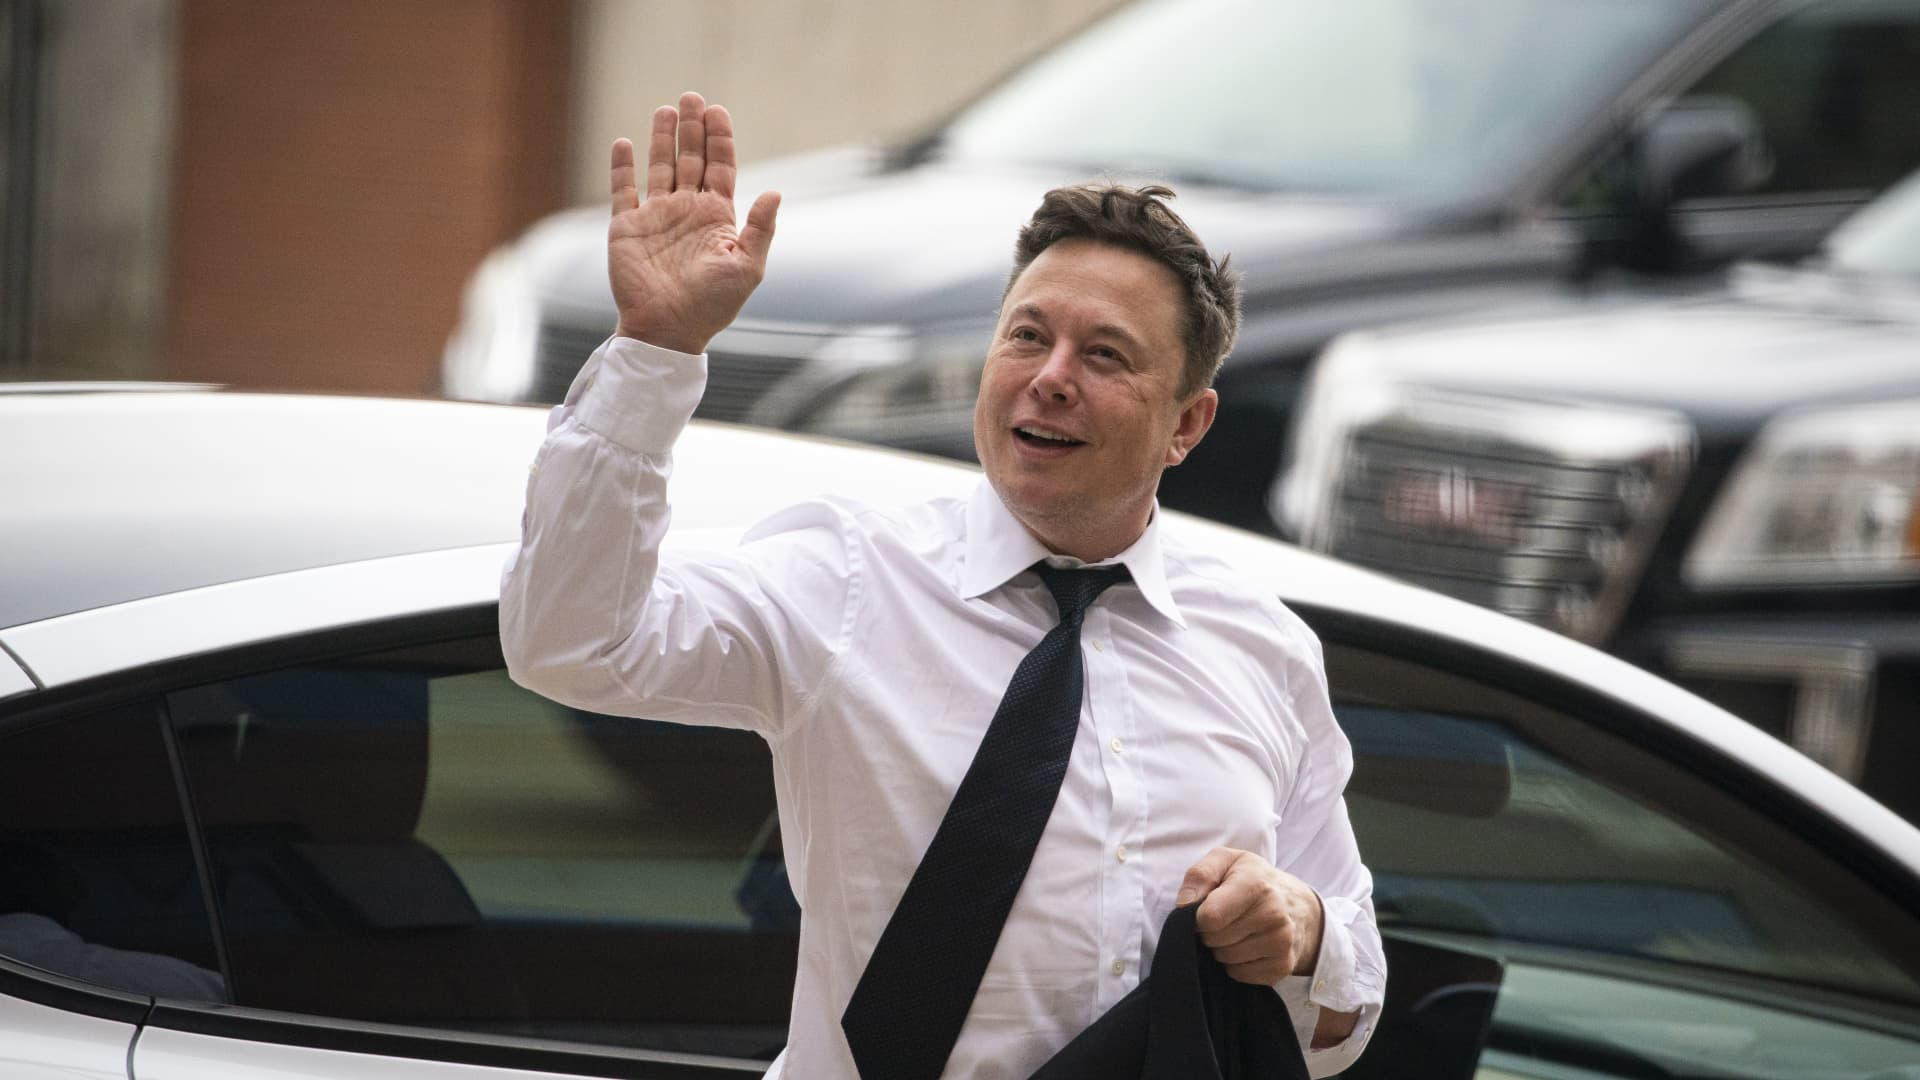 Elon Musk, chief executive officer of Tesla Inc., arrives at court during the SolarCity trial in Wilmington, Delaware, U.S., on Tuesday, July 13, 2021.